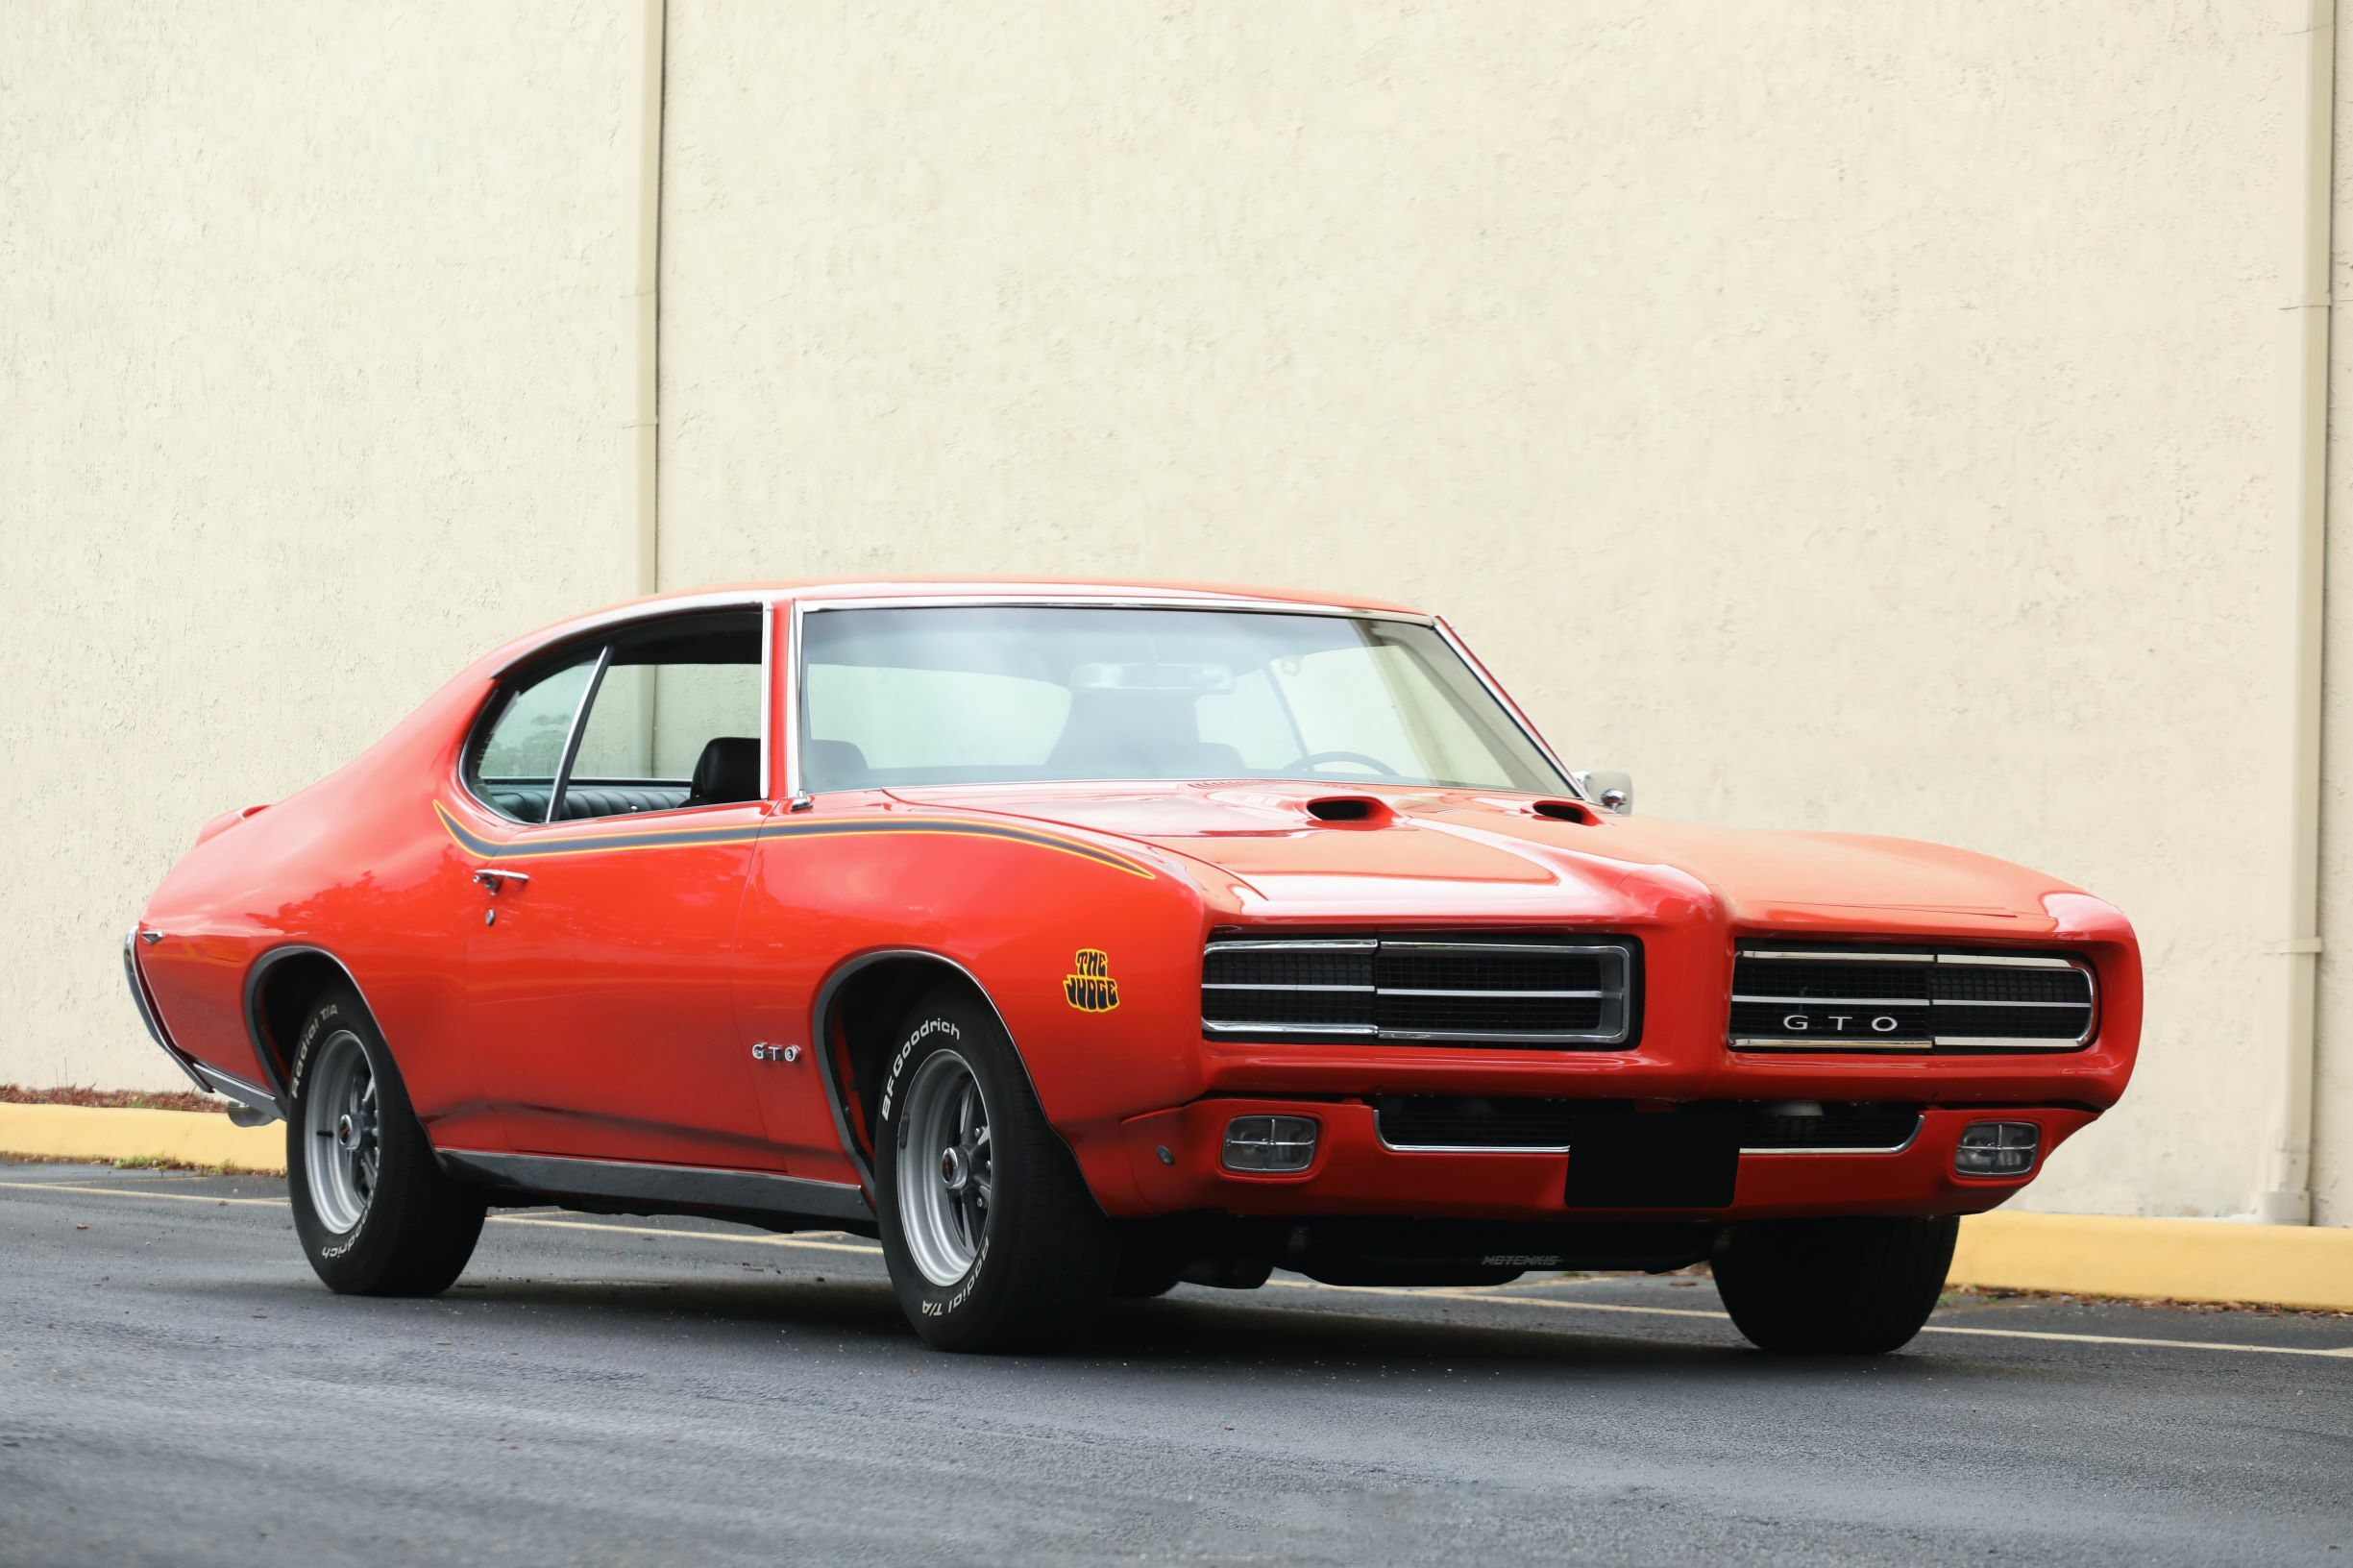 This 1969 Pontiac GTO Judge Ram Air (Lot #661.2) is powered by a 400ci 8-cylinder engine with 4-barrel carburetor backed by a 3-speed Turbo Hydramatic automatic transmission.